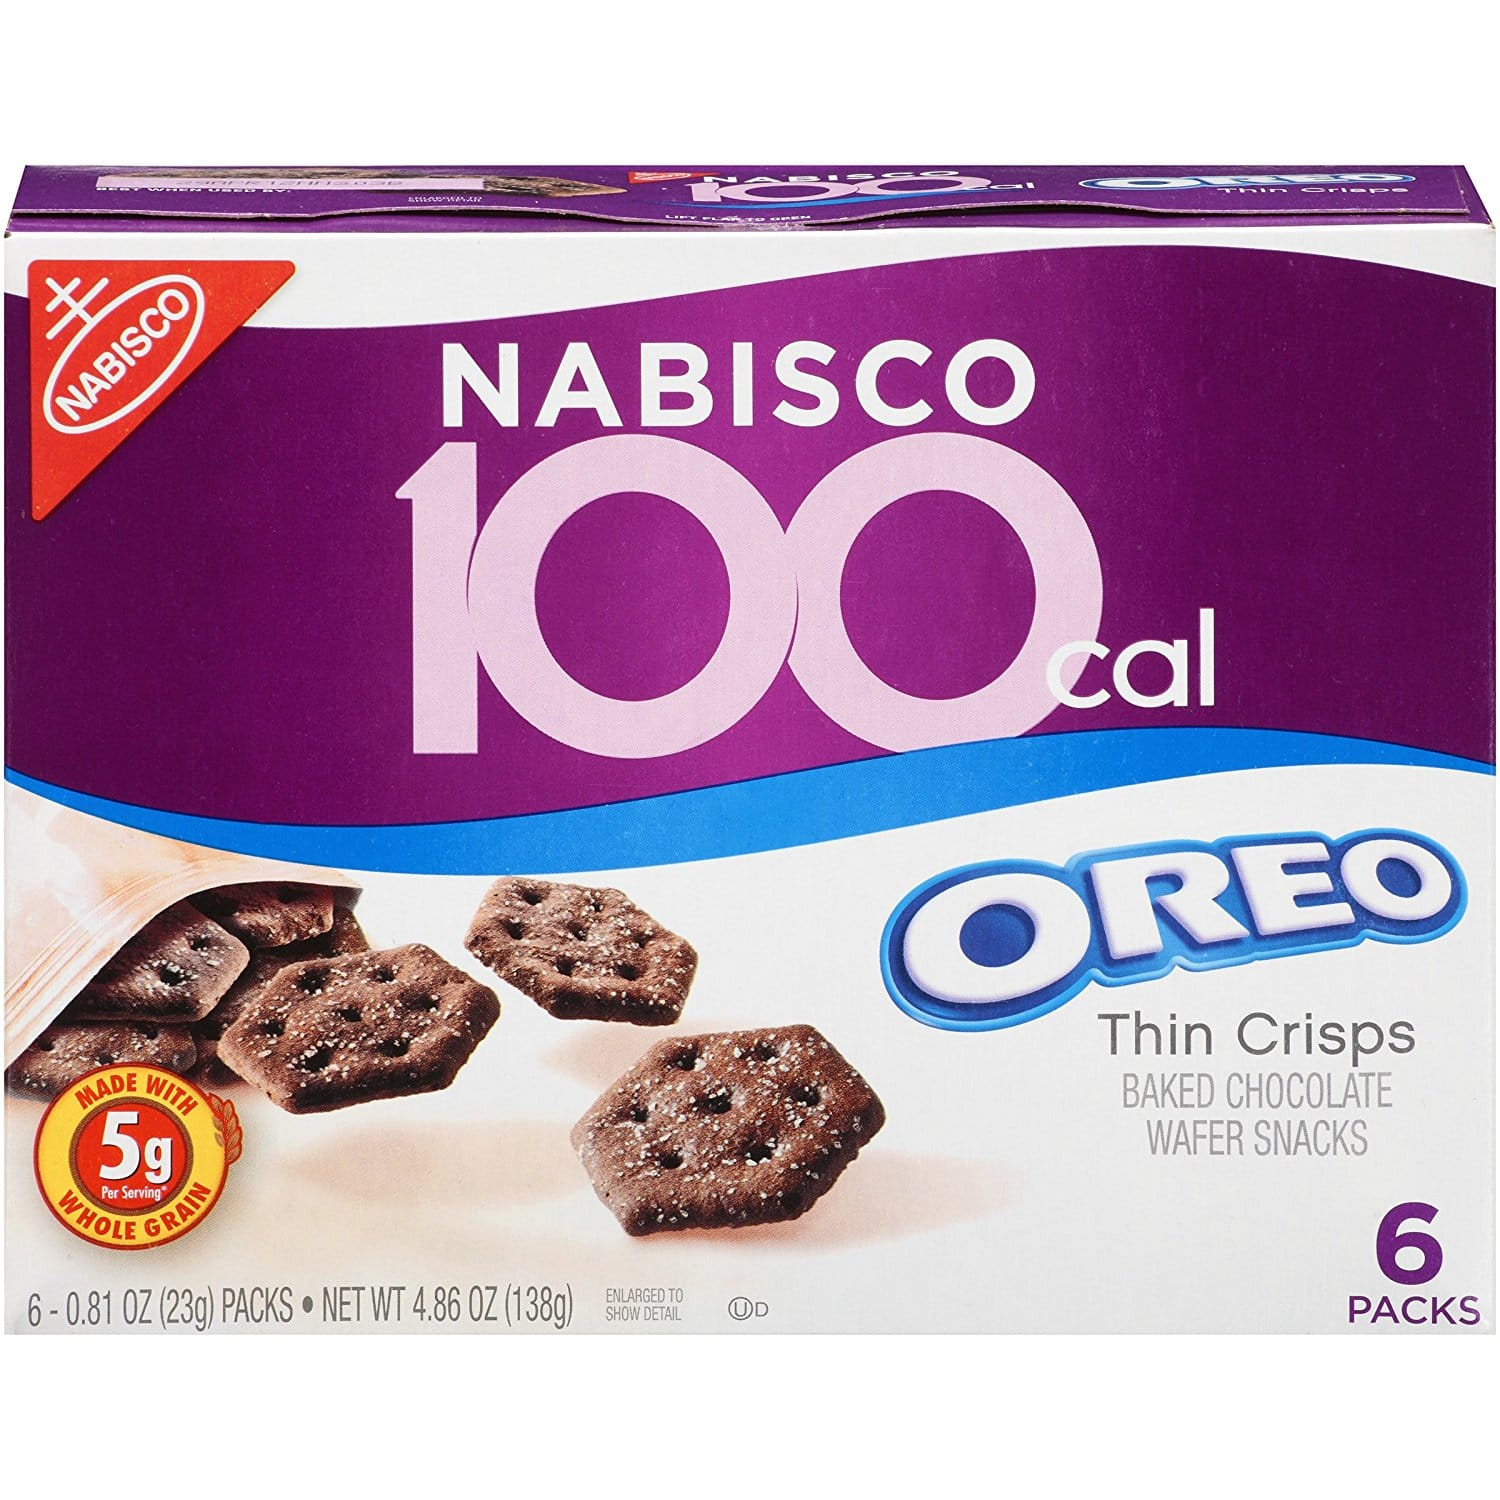 6-Pack 6-Count Nabisco 100 Calories Oreo Thin Snacks (Chocolate) $5.70 or Less + Free Shipping Amazon.com